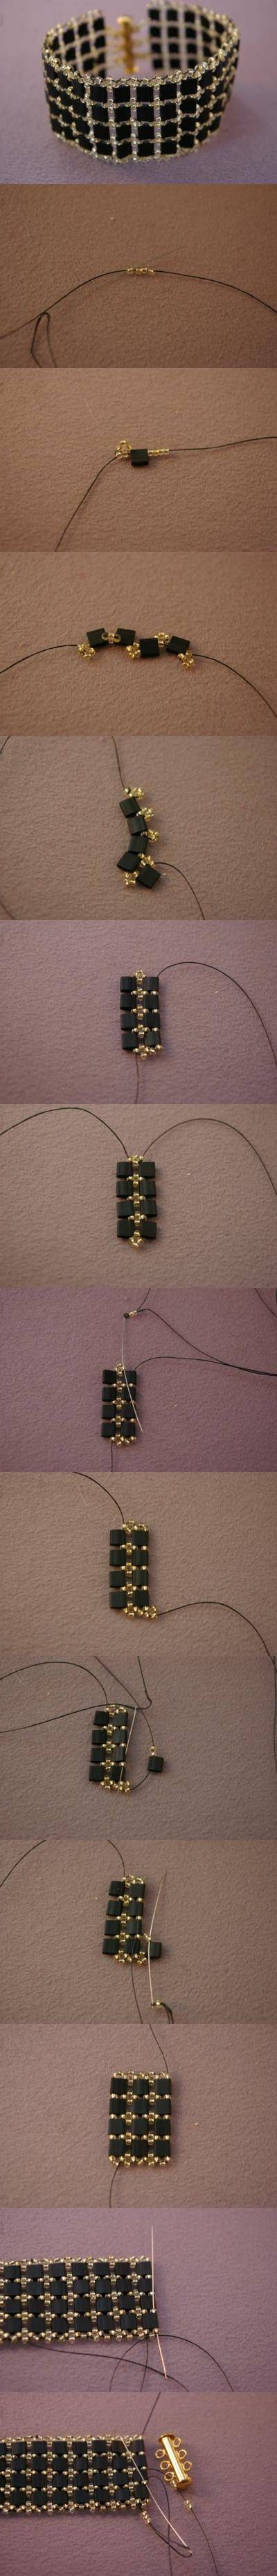 tutorial da BeadWork